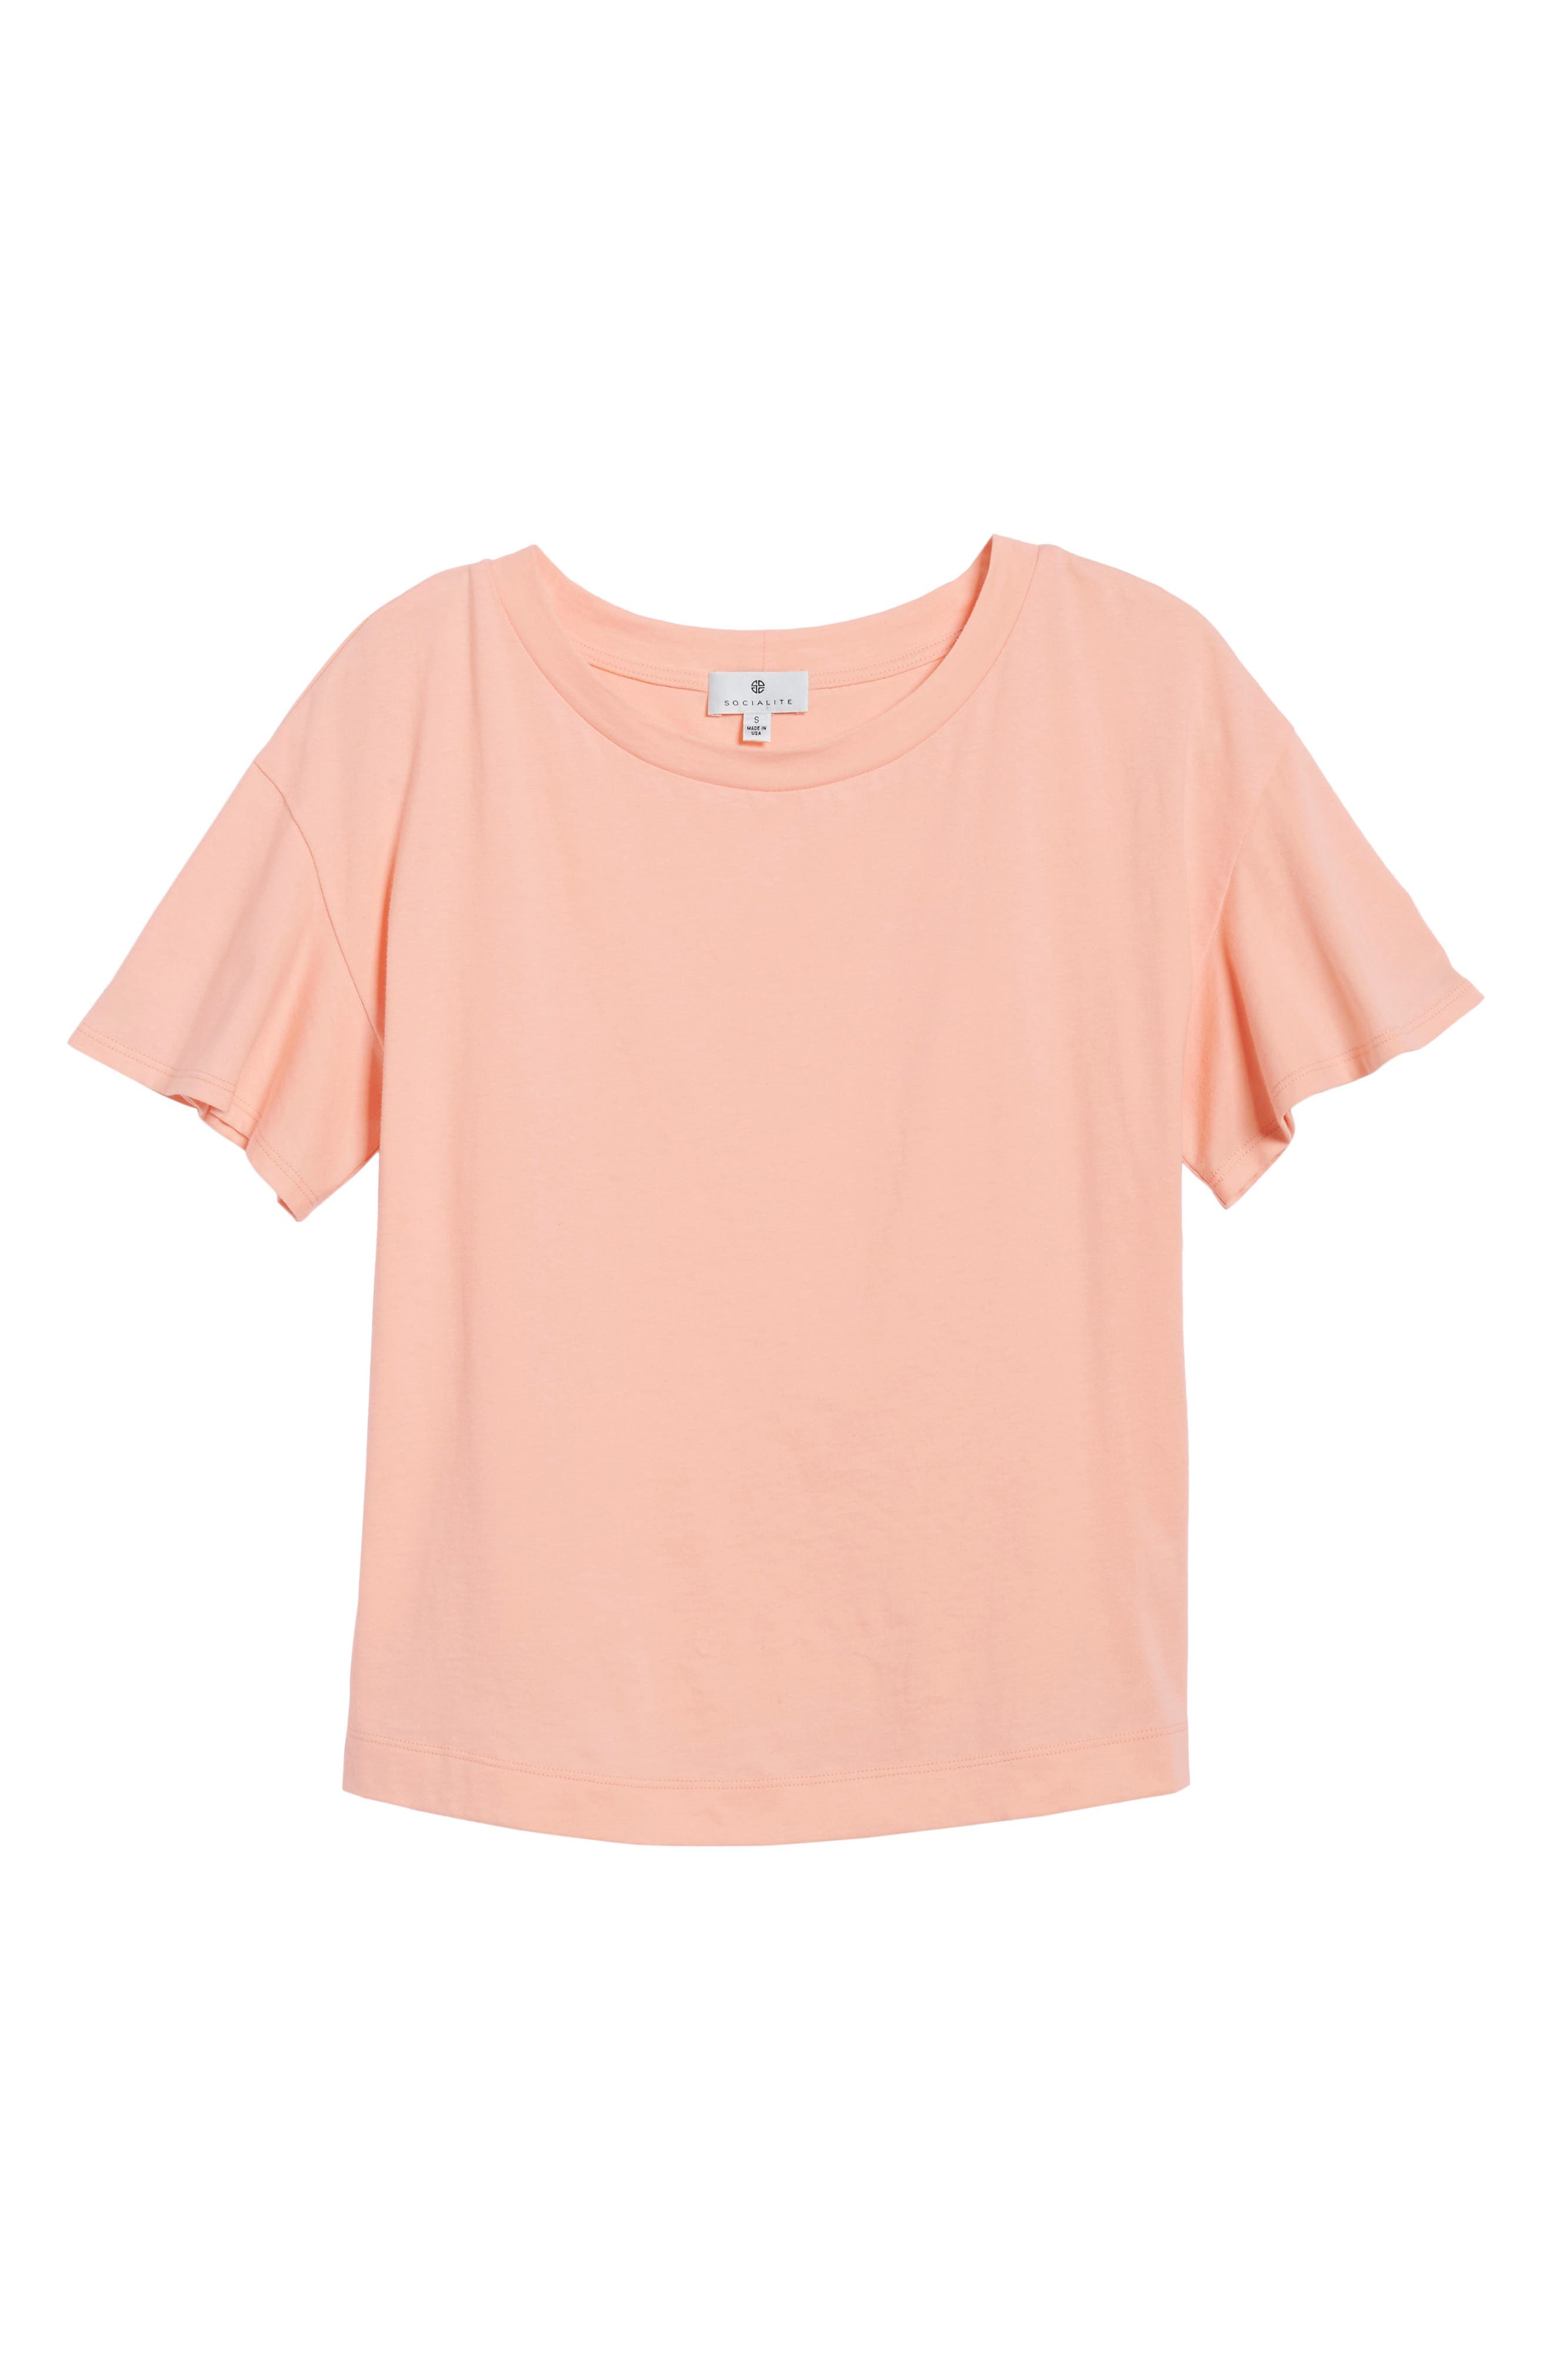 Flutter Sleeve Tee,                             Alternate thumbnail 18, color,